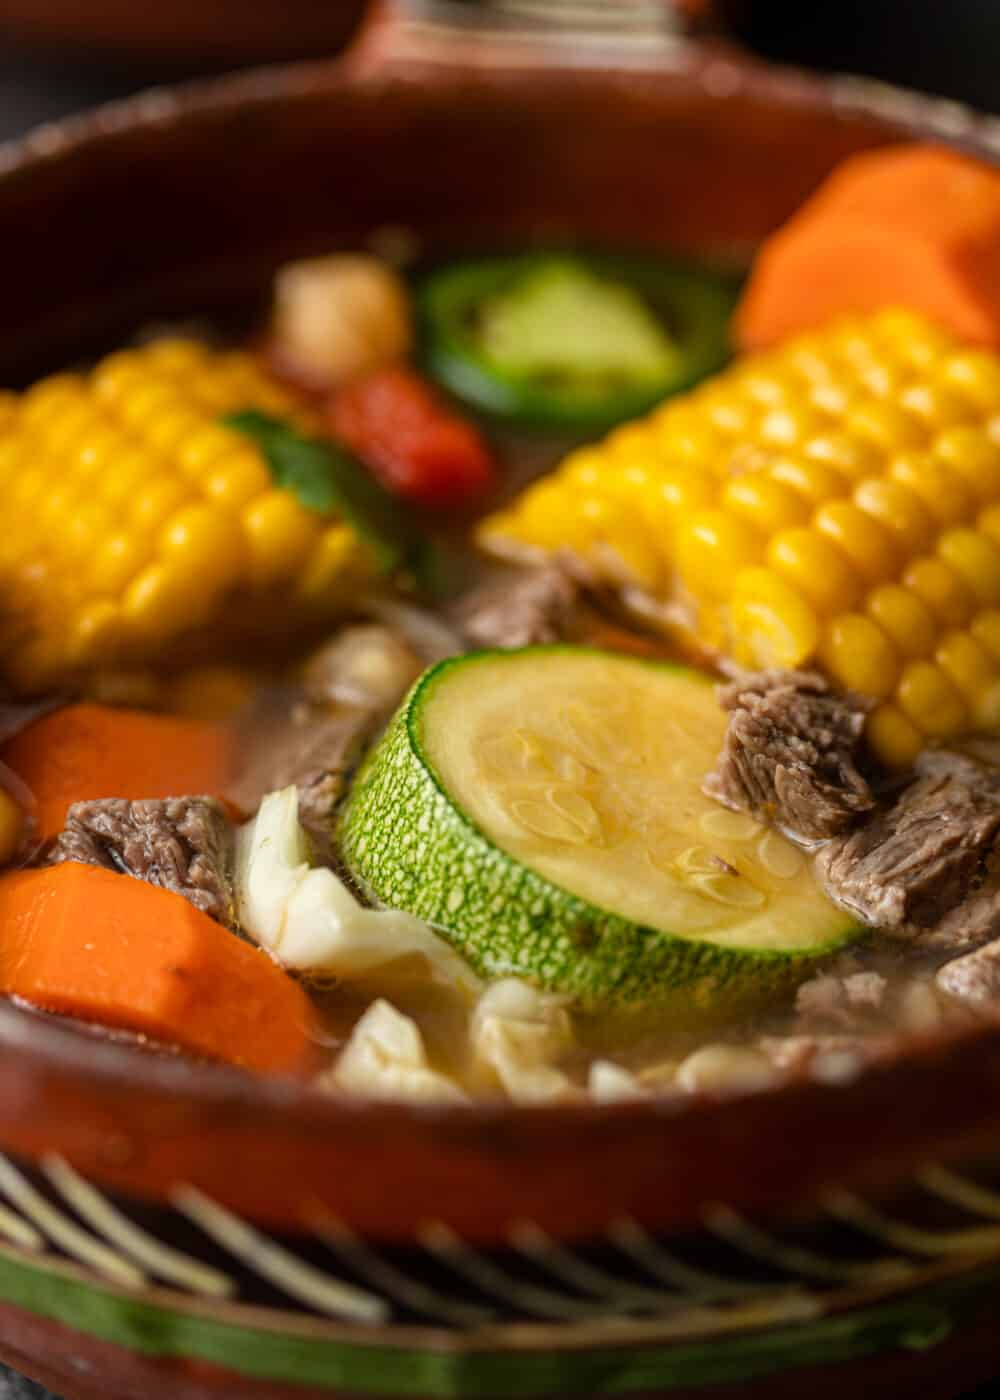 close up: bowl with beef broth, small pieces of beef and slices of carrots and zucchini